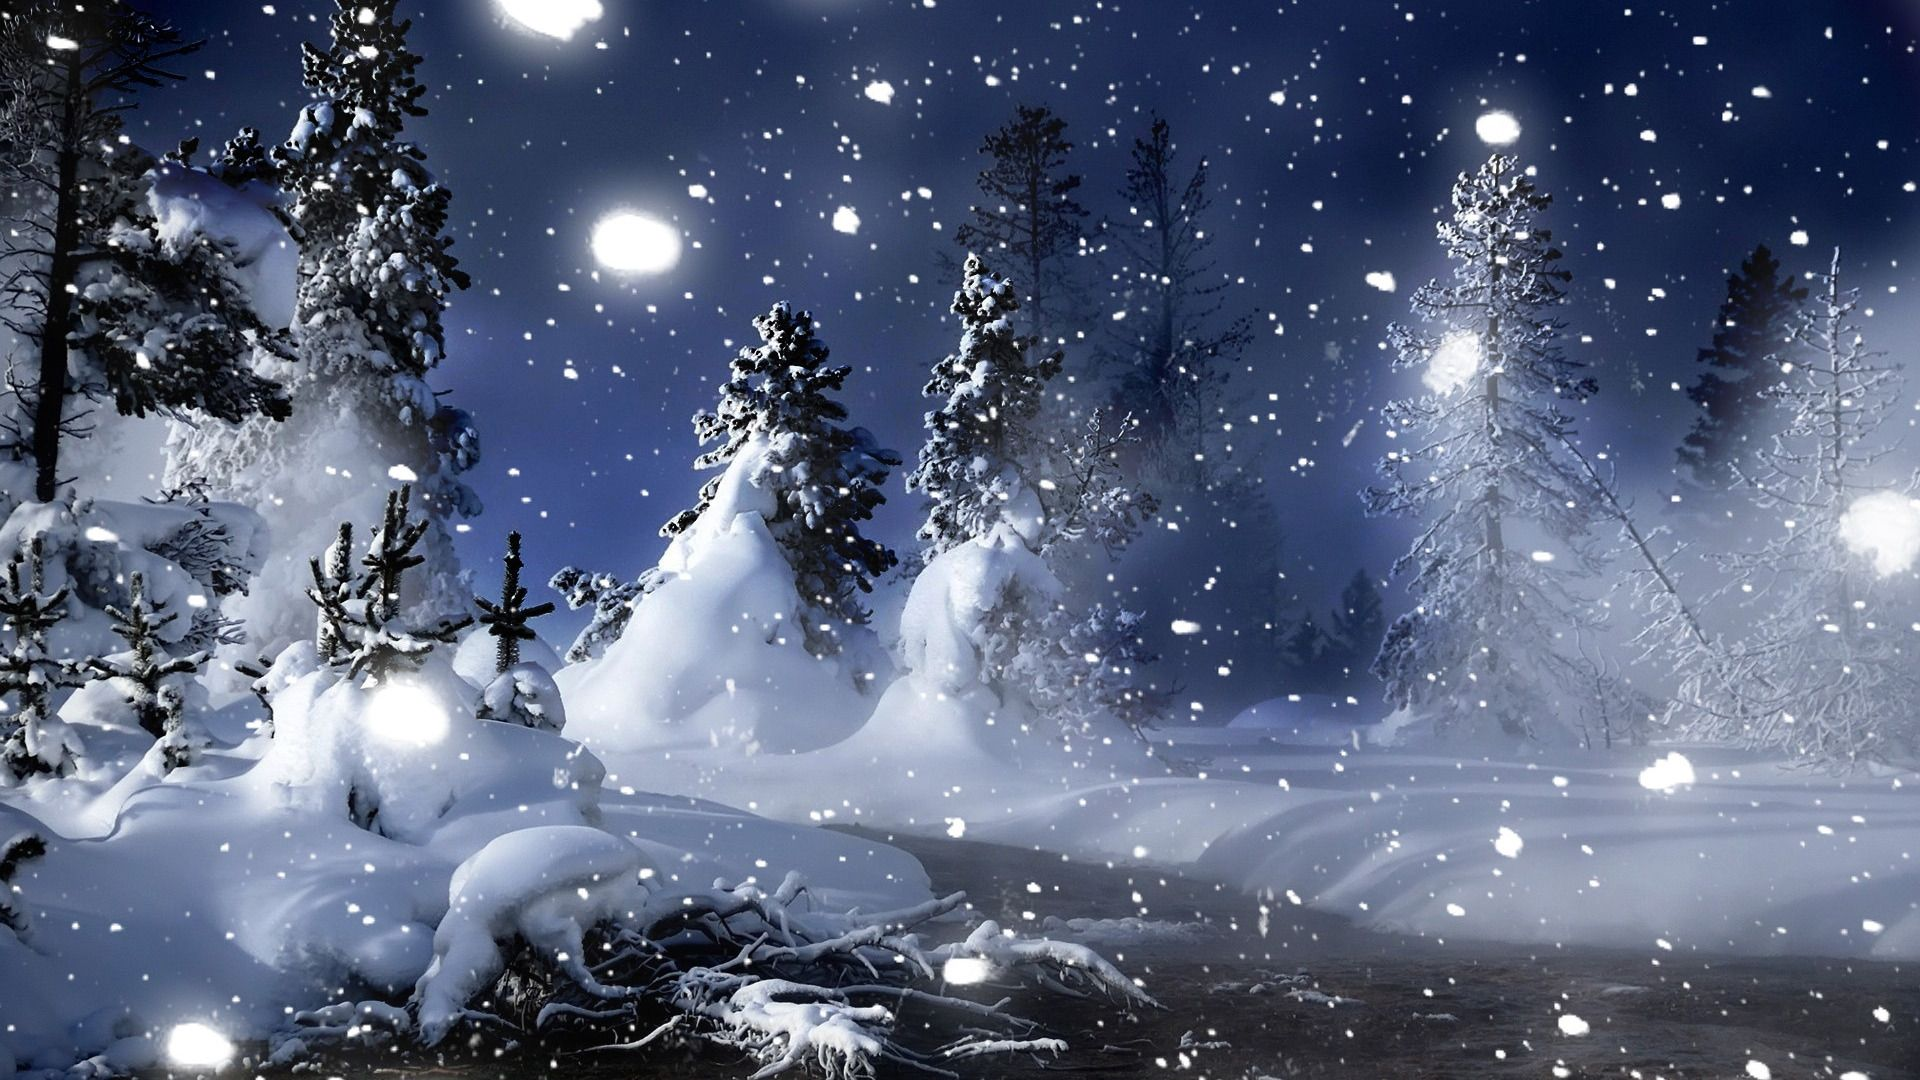 Winter Snow   Wallpaper High Definition High Quality Widescreen 1920x1080